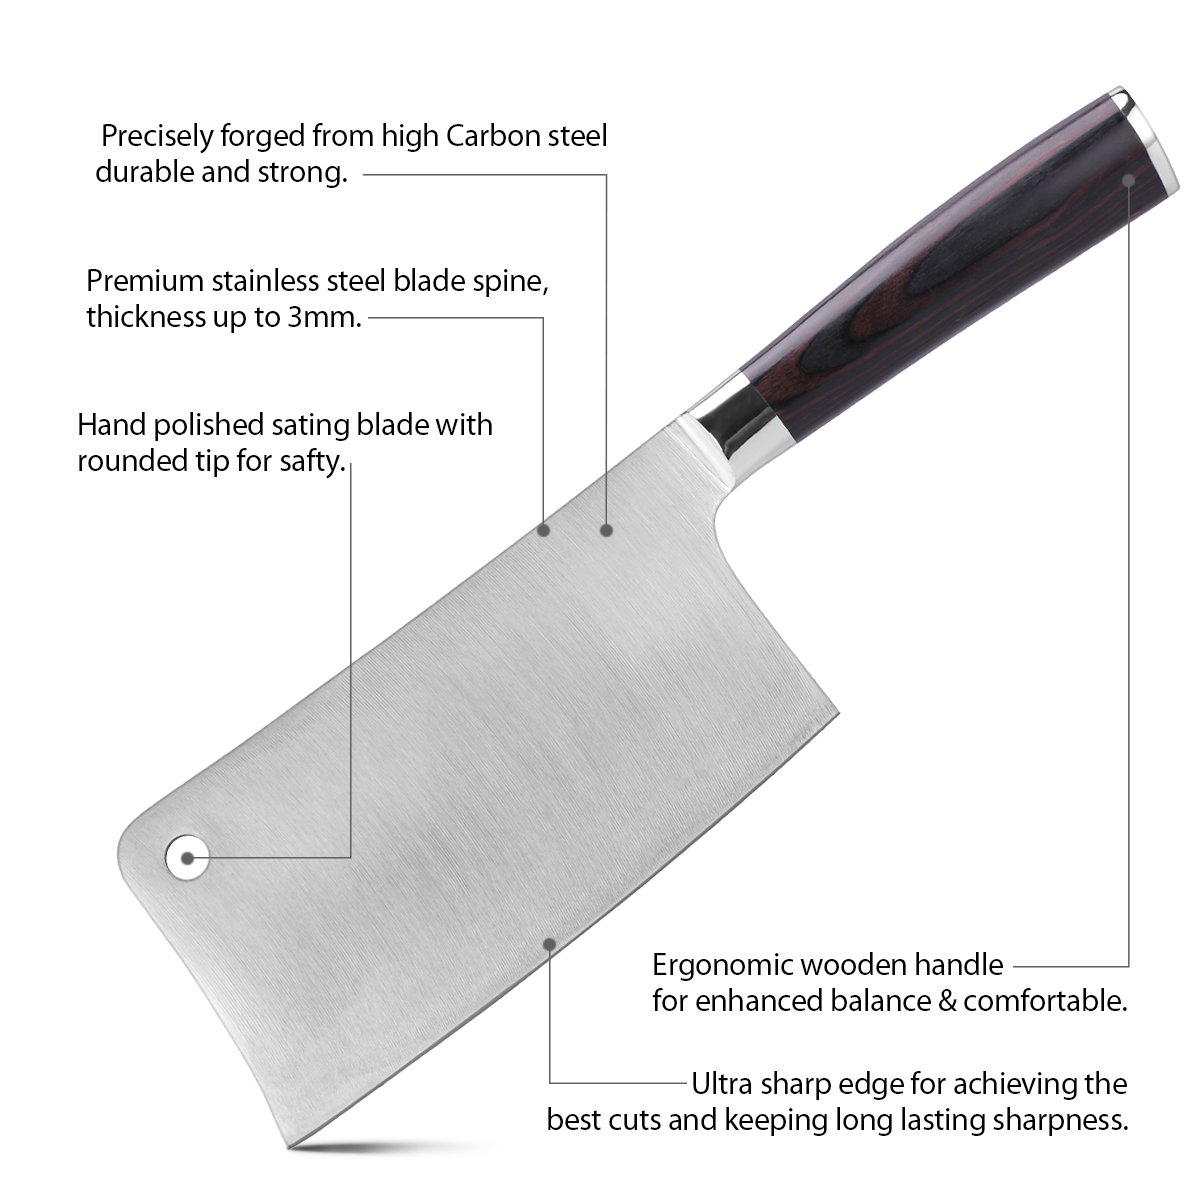 Meat Cleaver Professional Butcher Knife Cleaver Knives Vegetable Cutter Heavy Duty Chopper Butcher High Carbon Stainless for Home Kitchen or Restaurant by CUSIBOX (Image #6)